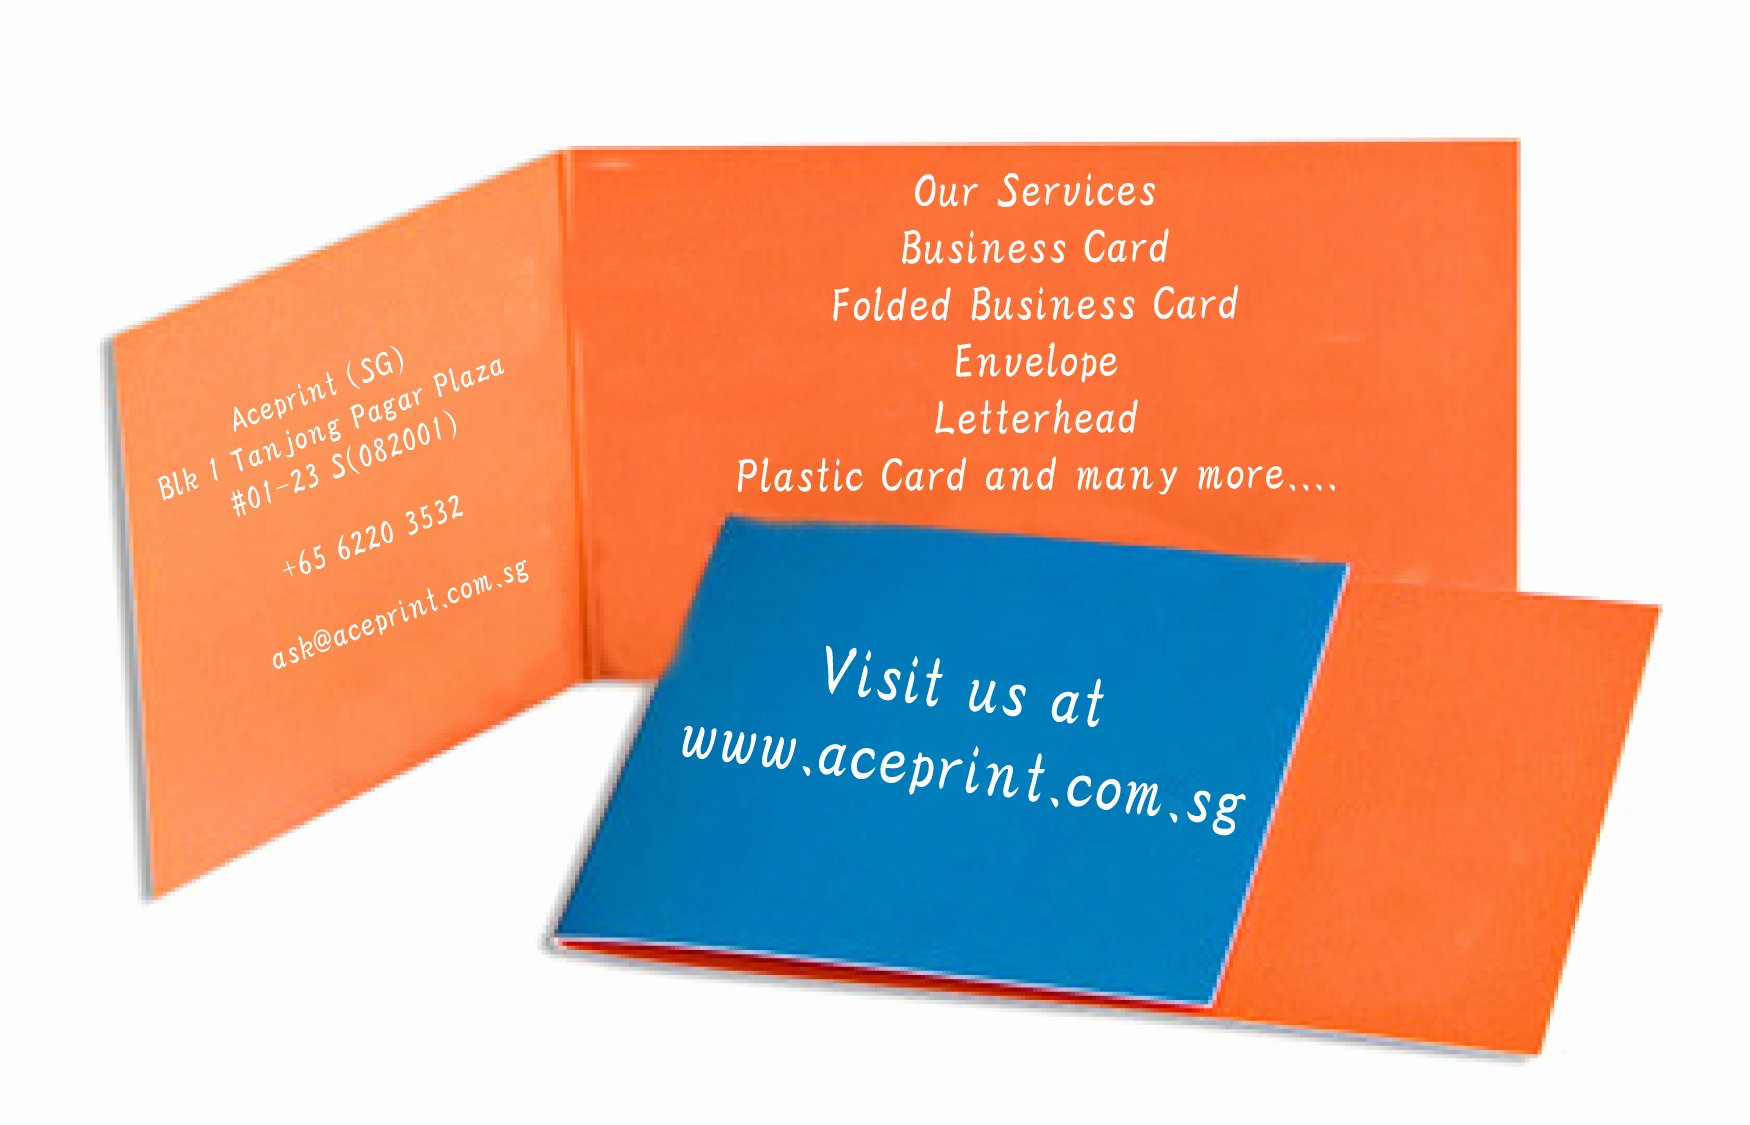 Foldable Business Card Template Elegant Singapore Printing Service Aceprint